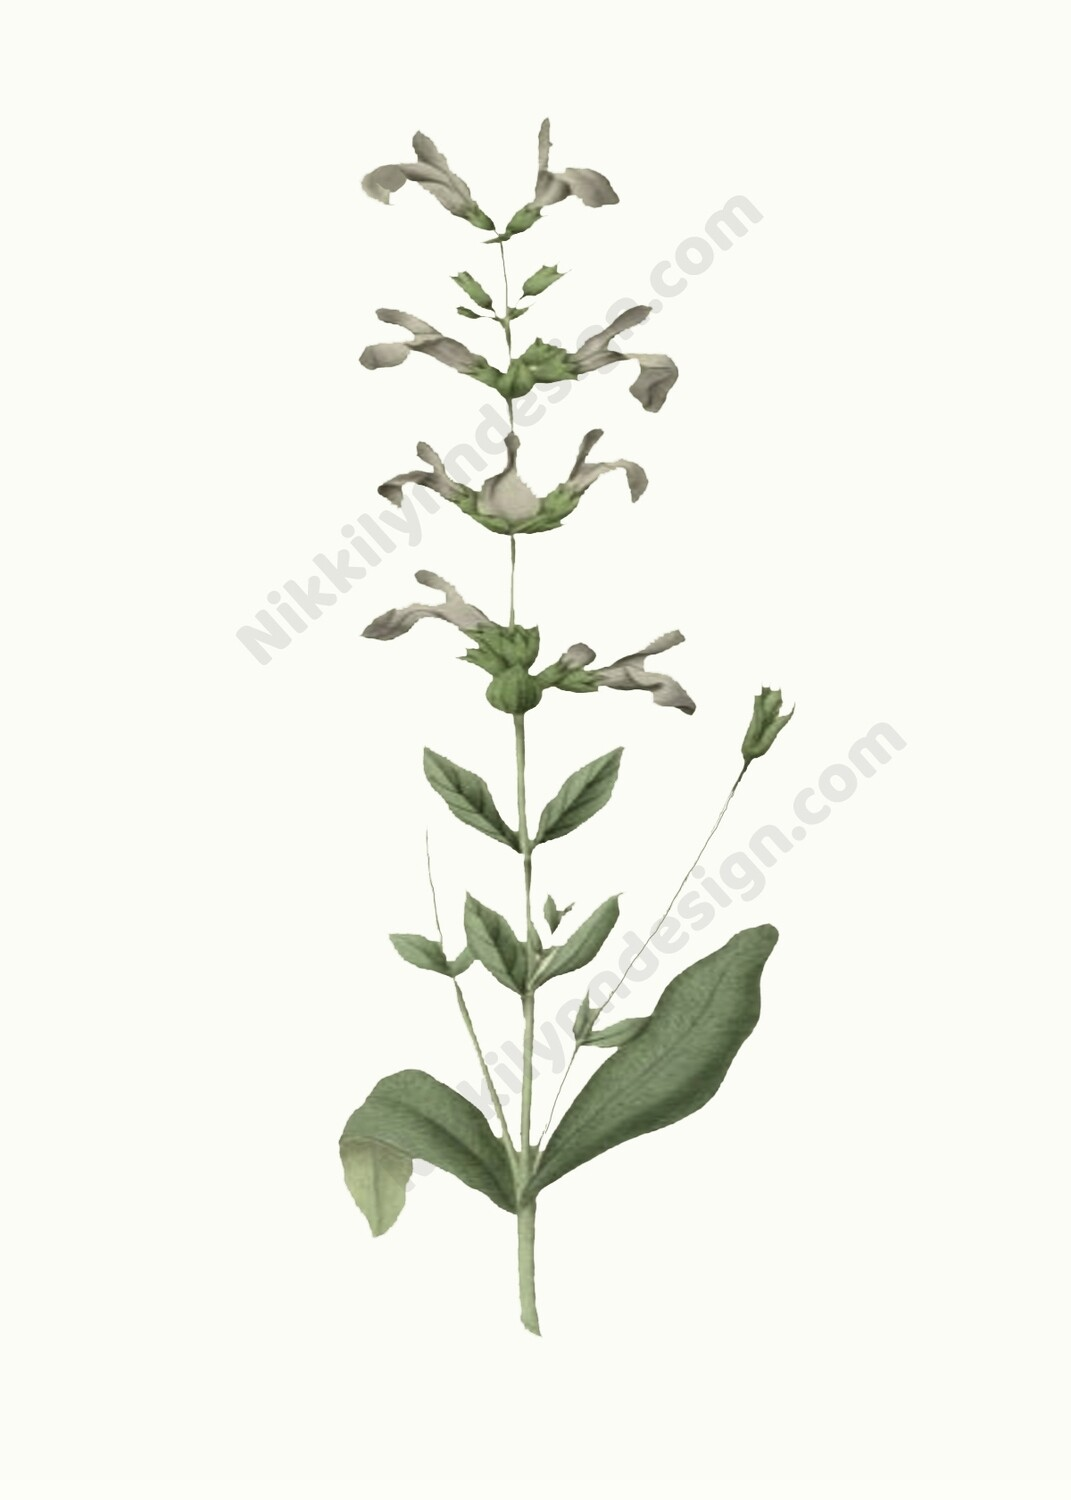 Common Sage Digital Download Prints Up To 8x10